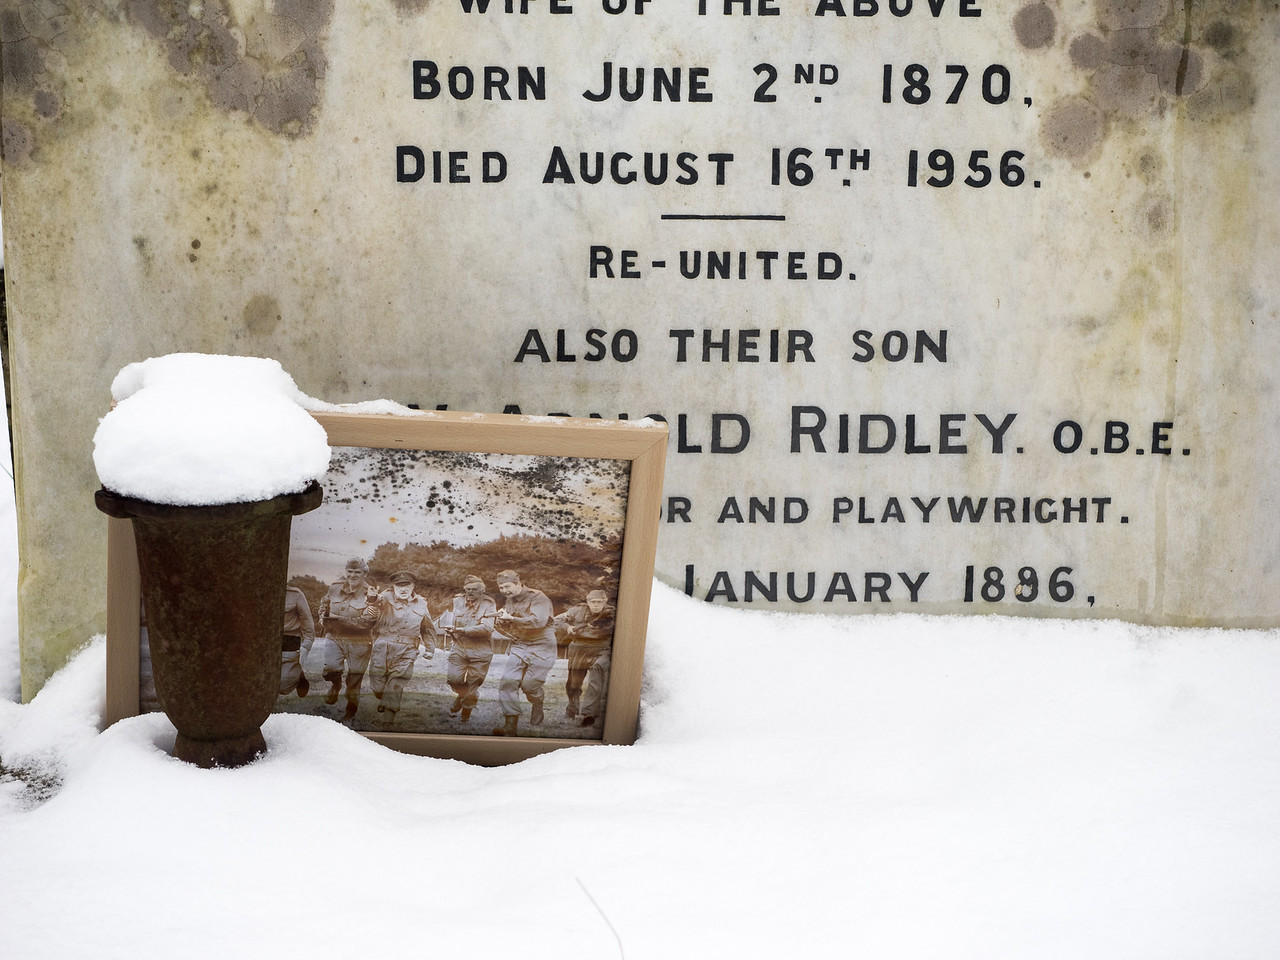 This is the grave of Arnold Ridley, who played Private Godfrey in Dad's Army. I stumbled upon it by accident when I noticed the framed picture on the grave.